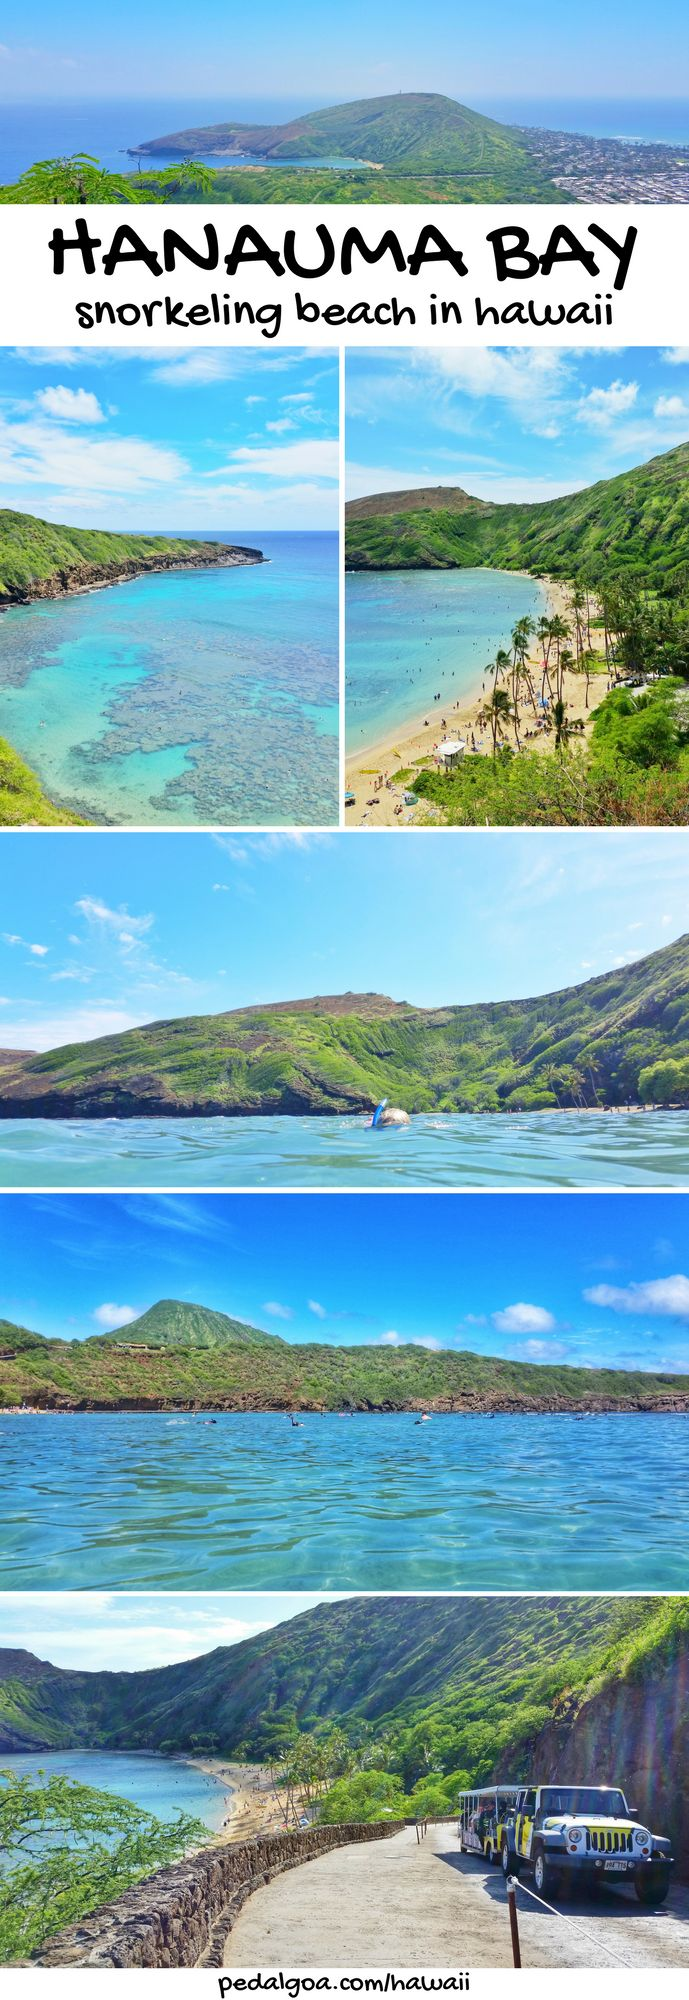 Hanauma Bay - Best beaches for snorkeling in Oahu. These are some Hawaii travel tips. For US beaches in Oahu Hawaii, there are activities like swimming and snorkeling with turtles and fish! Best Oahu beaches give you things to do with nearby hiking trails, food, and shopping. USA travel destinations for bucket list for world adventures when on a budget! So outside of Waikiki and Honolulu, put on the Hawaii itinerary! Add snorkeling gear to Hawaii packing list and what to wear in Hawaii.